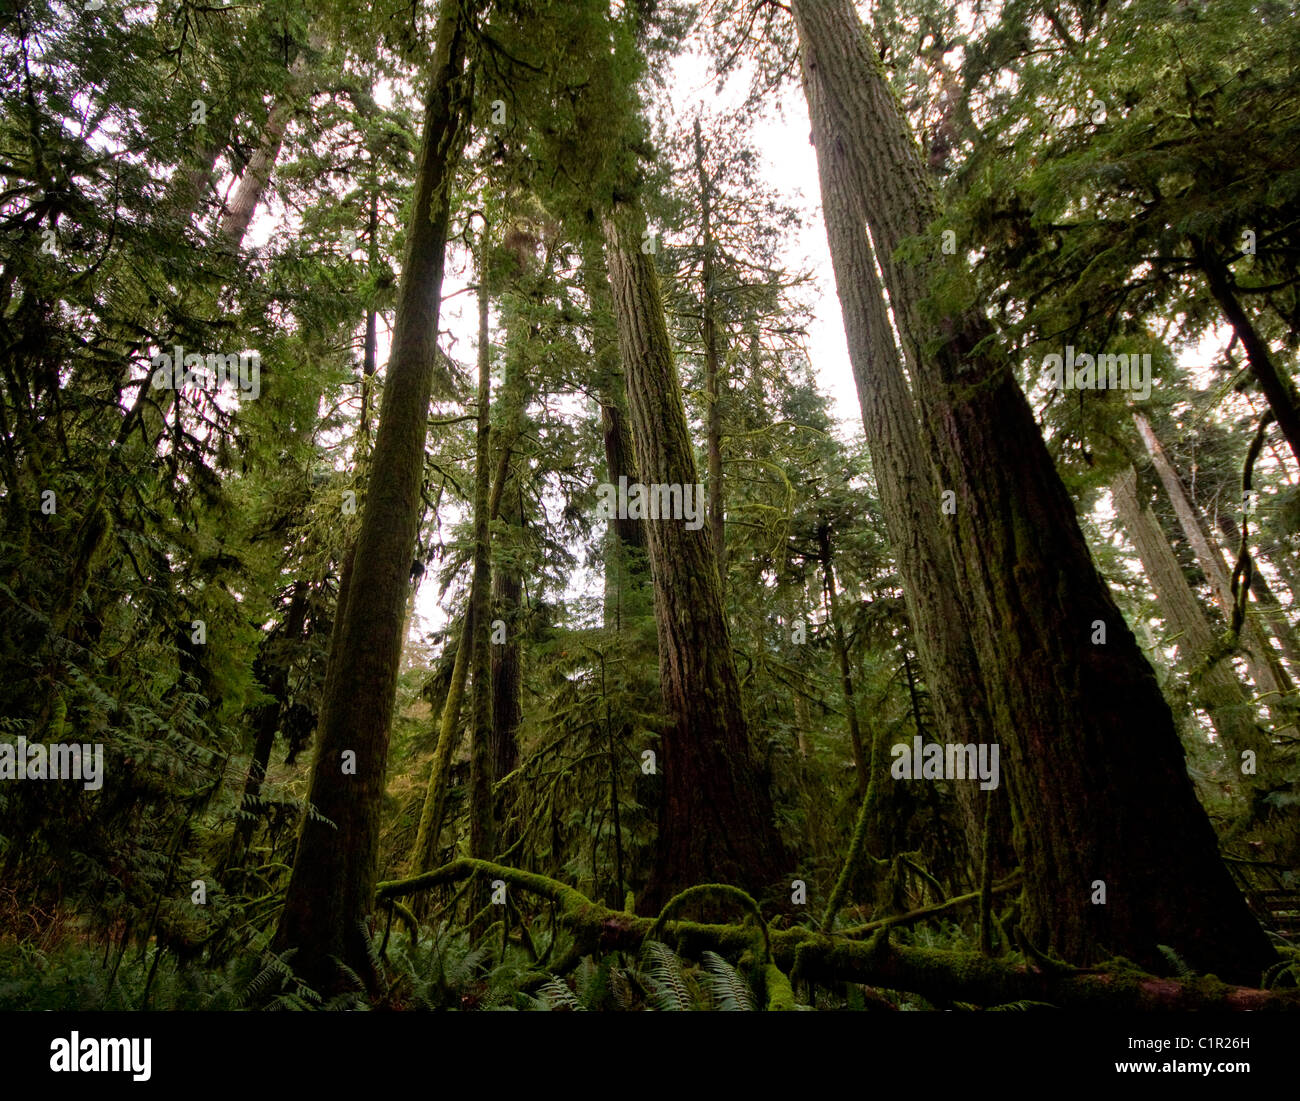 Old growth coniferous trees, mostly Douglas Firs, Cathedral Grove, Vancouver Island, British Columbia - Stock Image